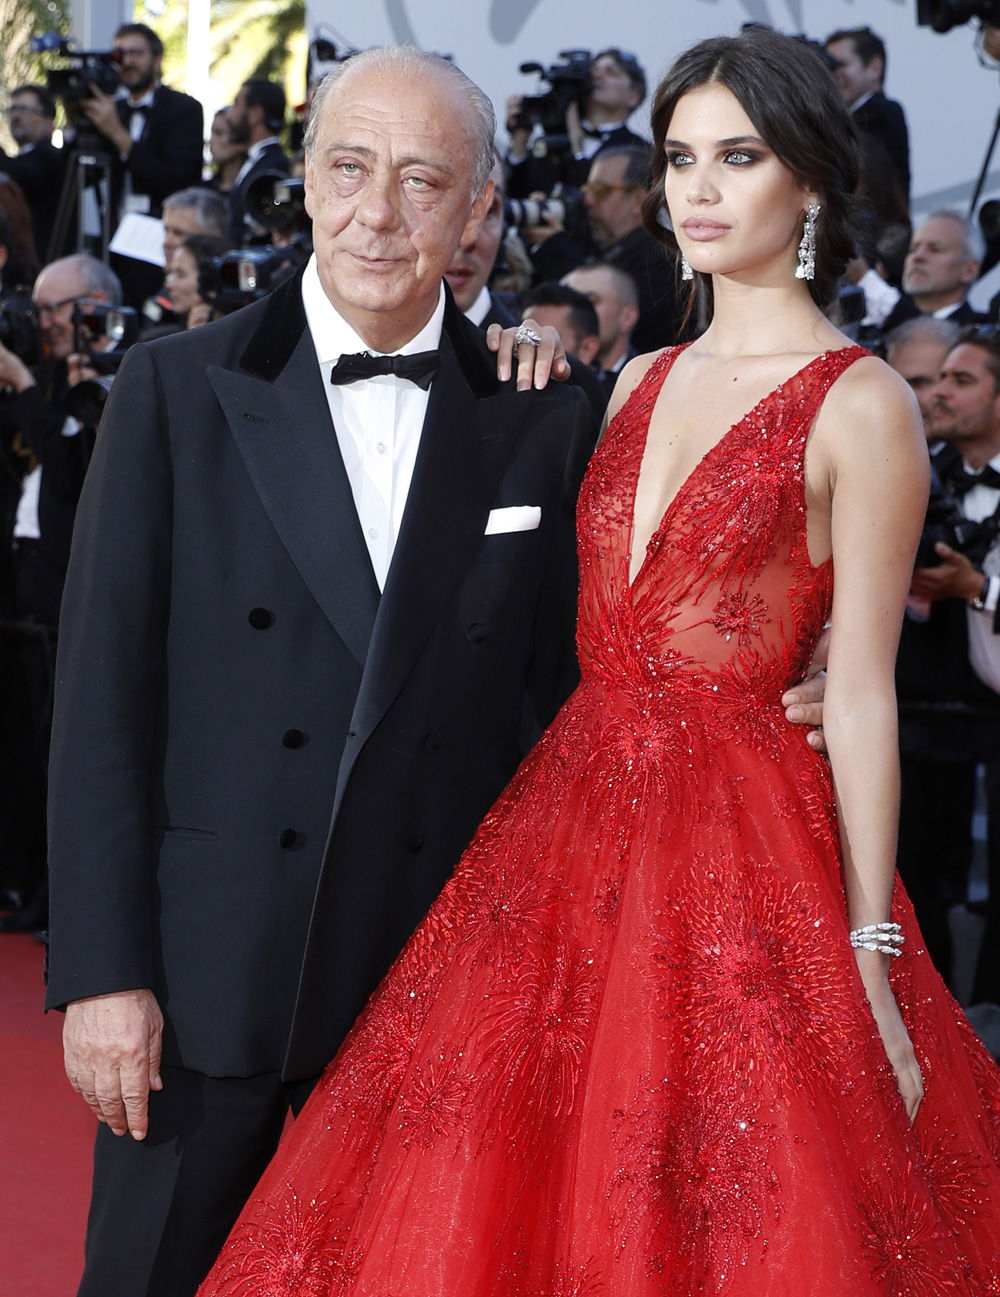 Portuguese Top Model Sara Sampaio Stunned In Her Red Gown Which She Styled With De Grisogono High Jewellery White Diamond Earrings A Ring Gold